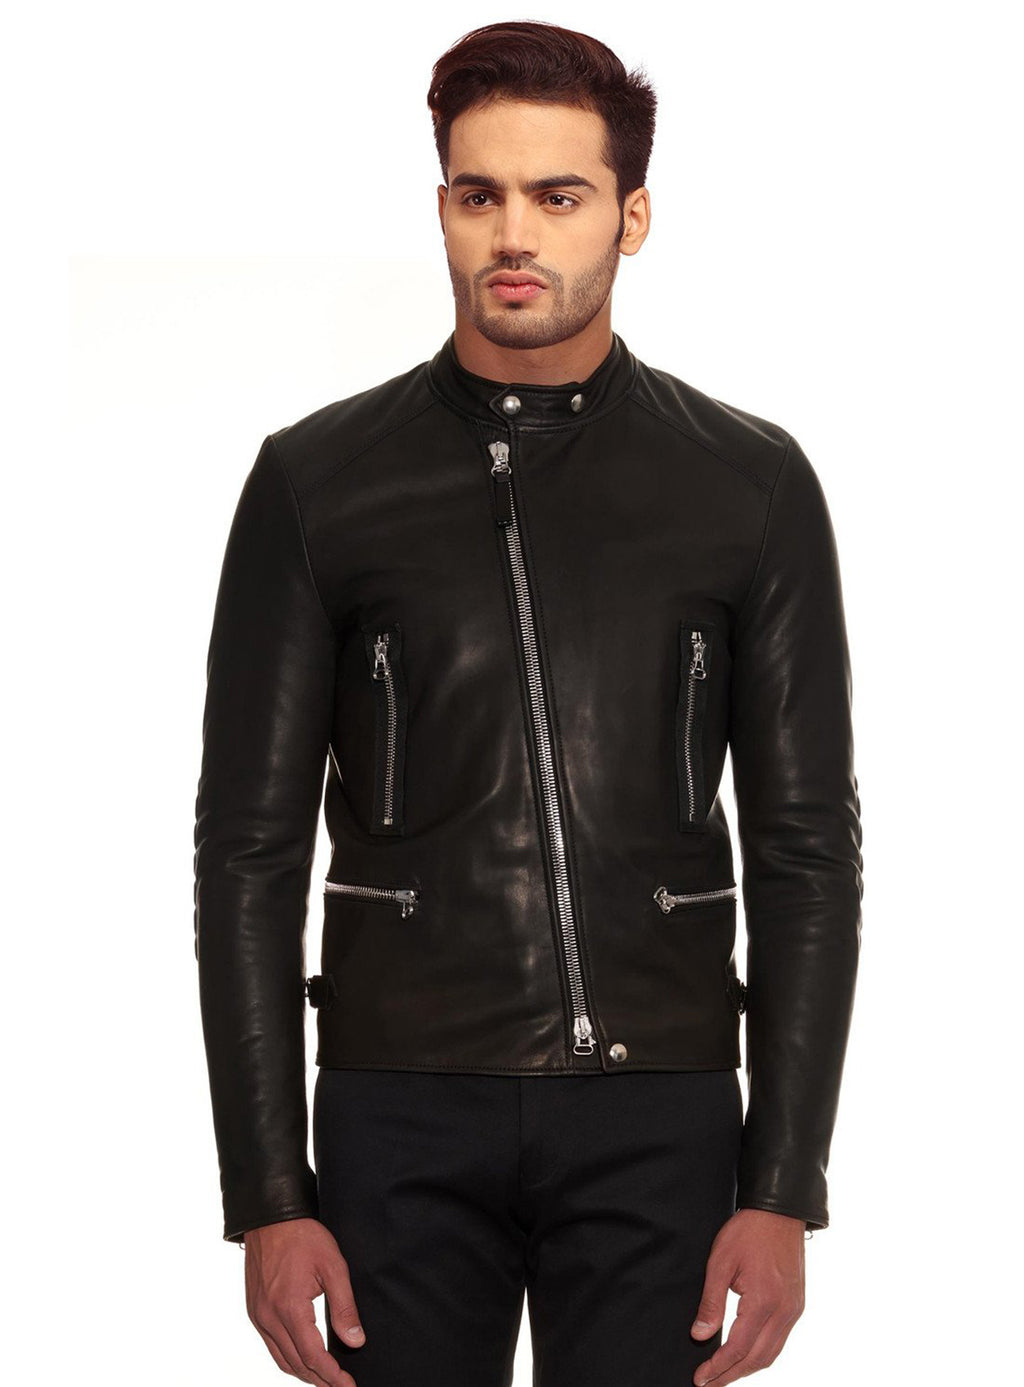 MEN LEATHER MOTORCYCLE JACKET MODEL MJ 071